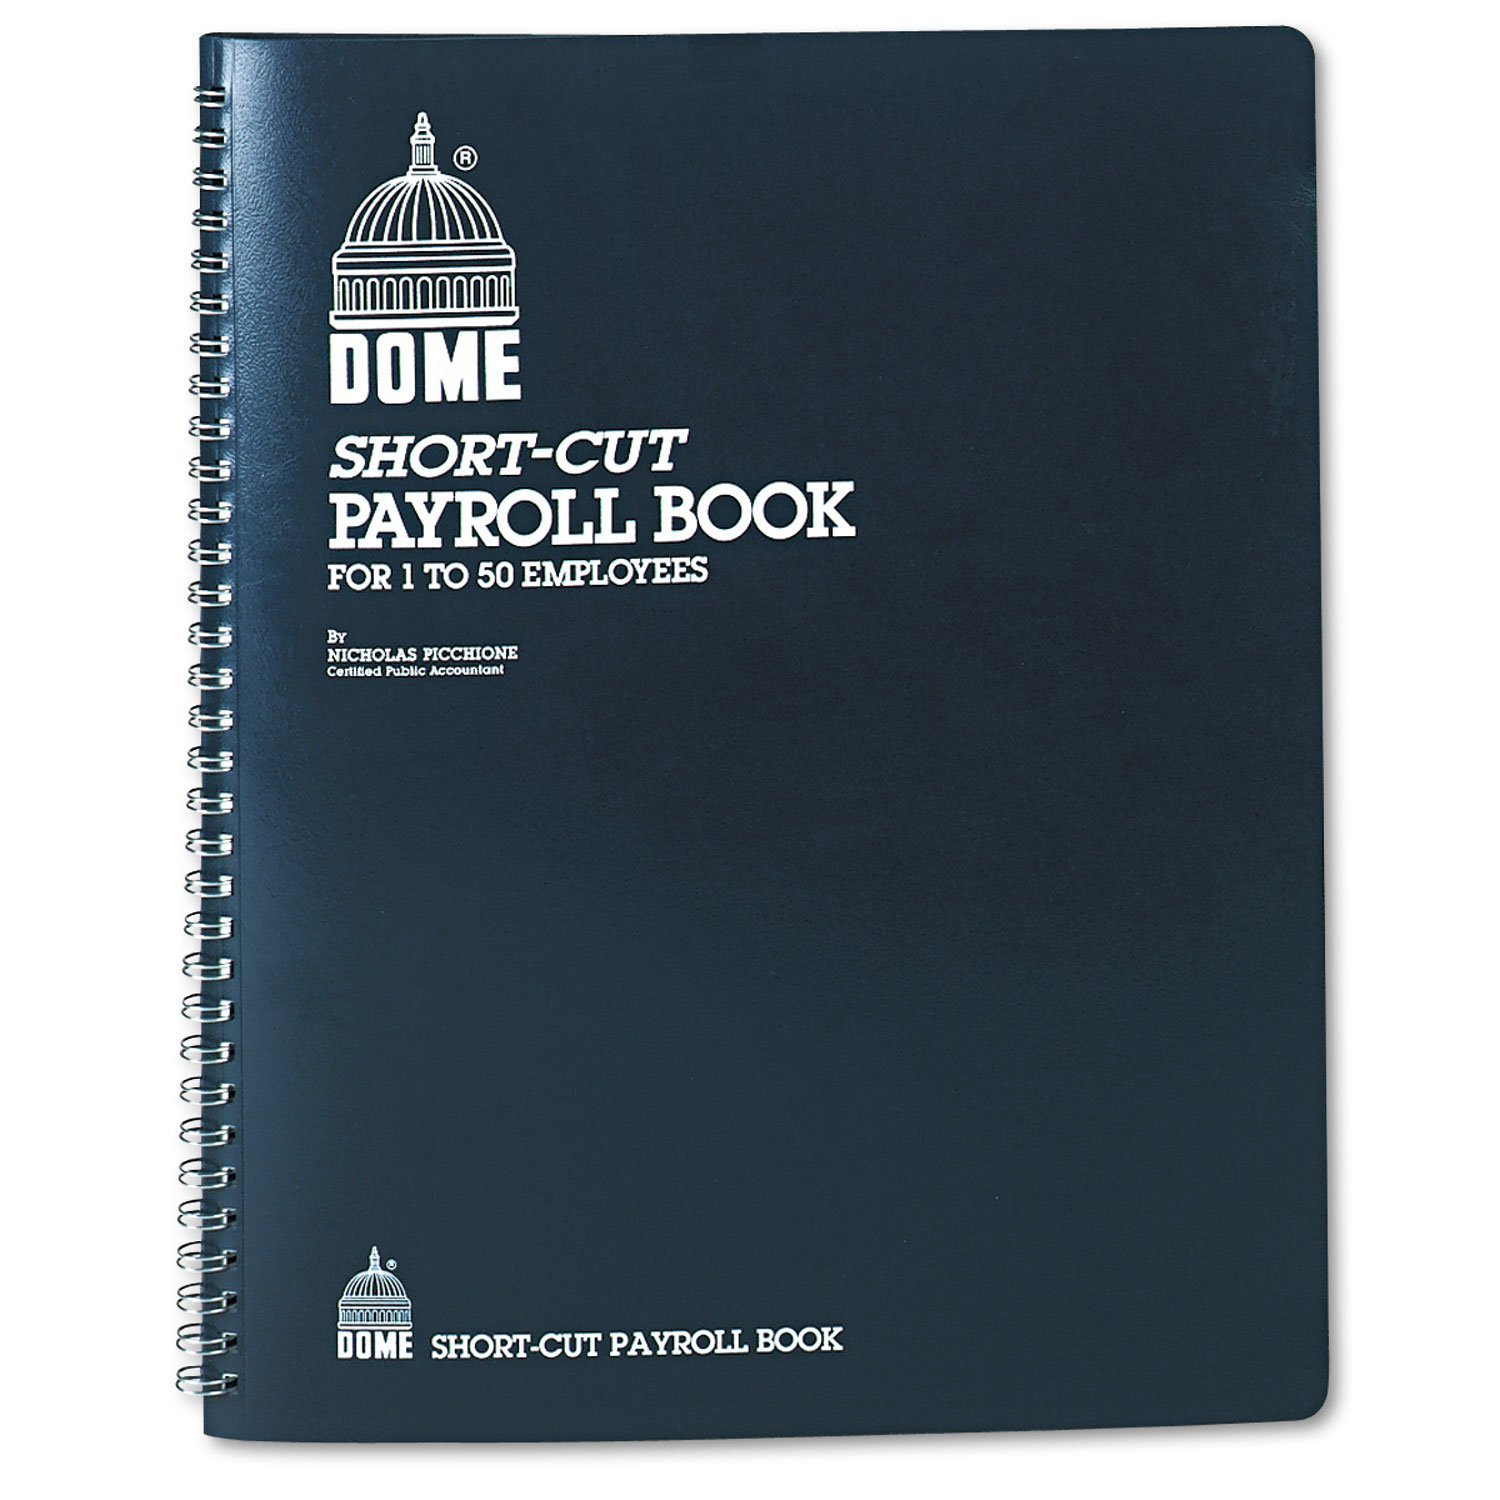 Dome 650 Payroll Record, Single Entry System, Blue Vinyl Cover, 8 3/4 x11 1/4 Pages by DomeSkin